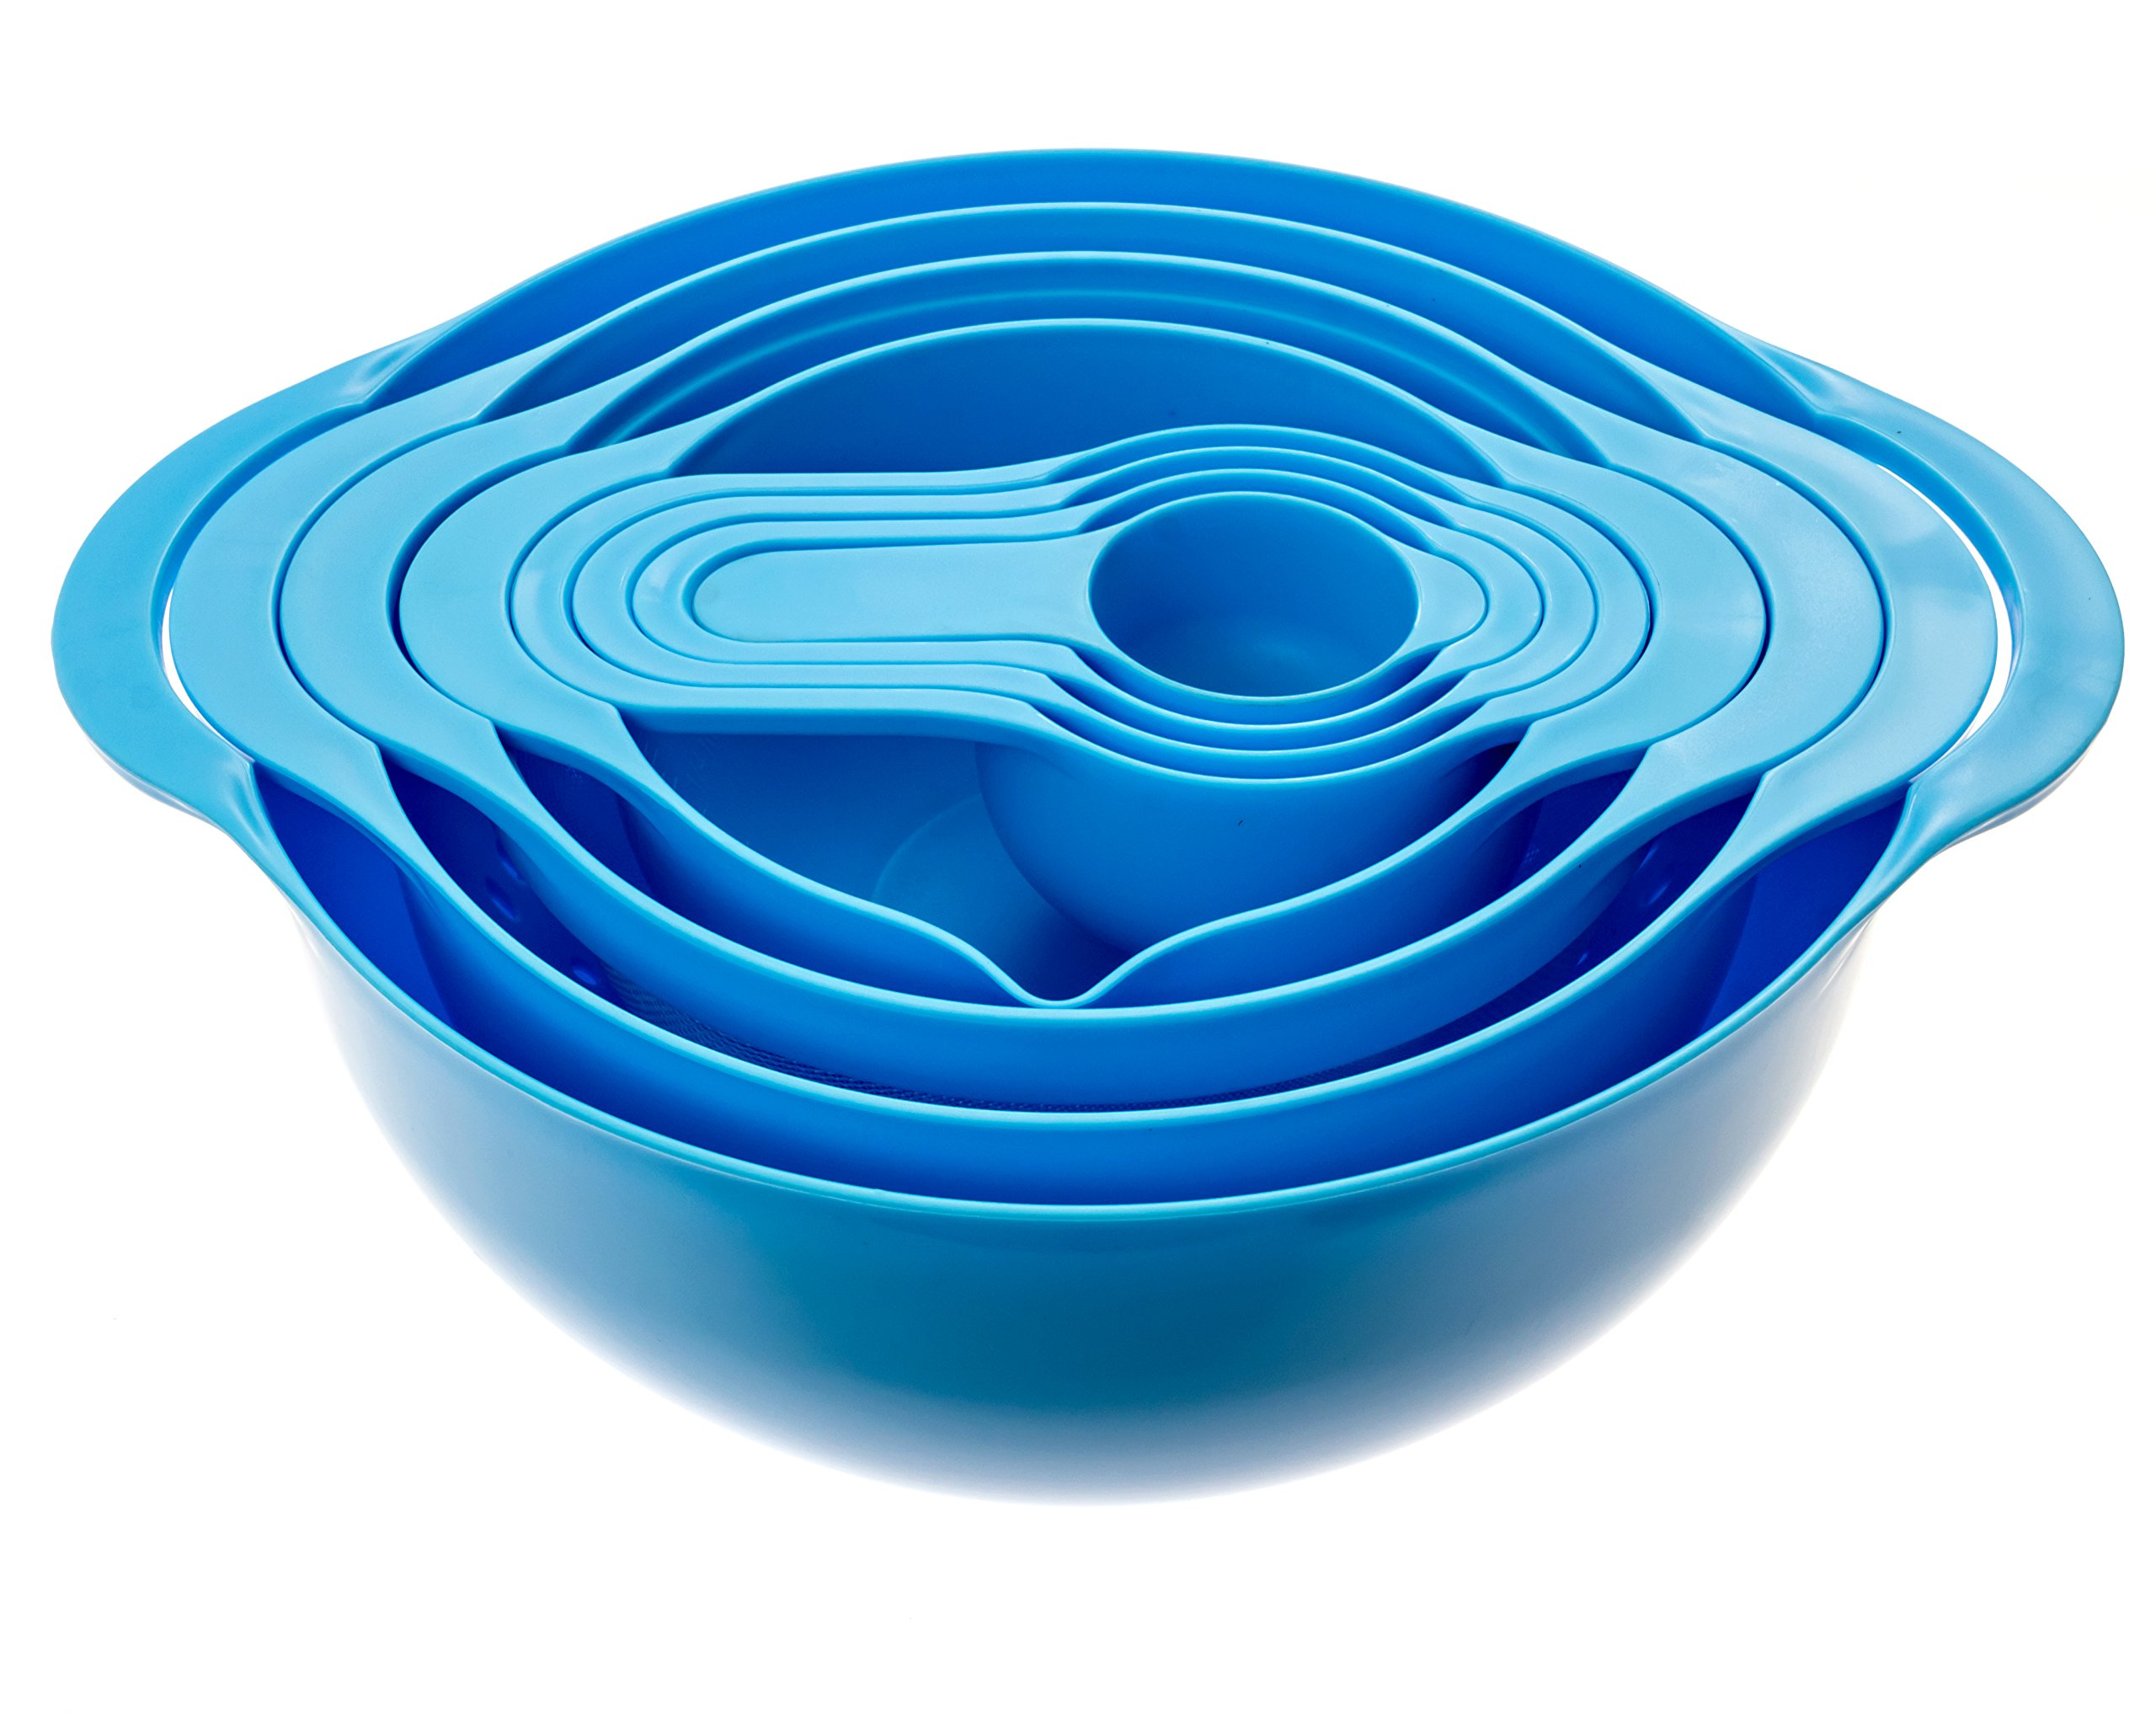 Set of 8 Compact Nesting Mixing Bowl Set Measuring Tools Sieve Colander Food Prep Plastic Dishwasher Safe Non-Slip, 8-Piece, By Intriom (Blue) by Intriom (Image #2)